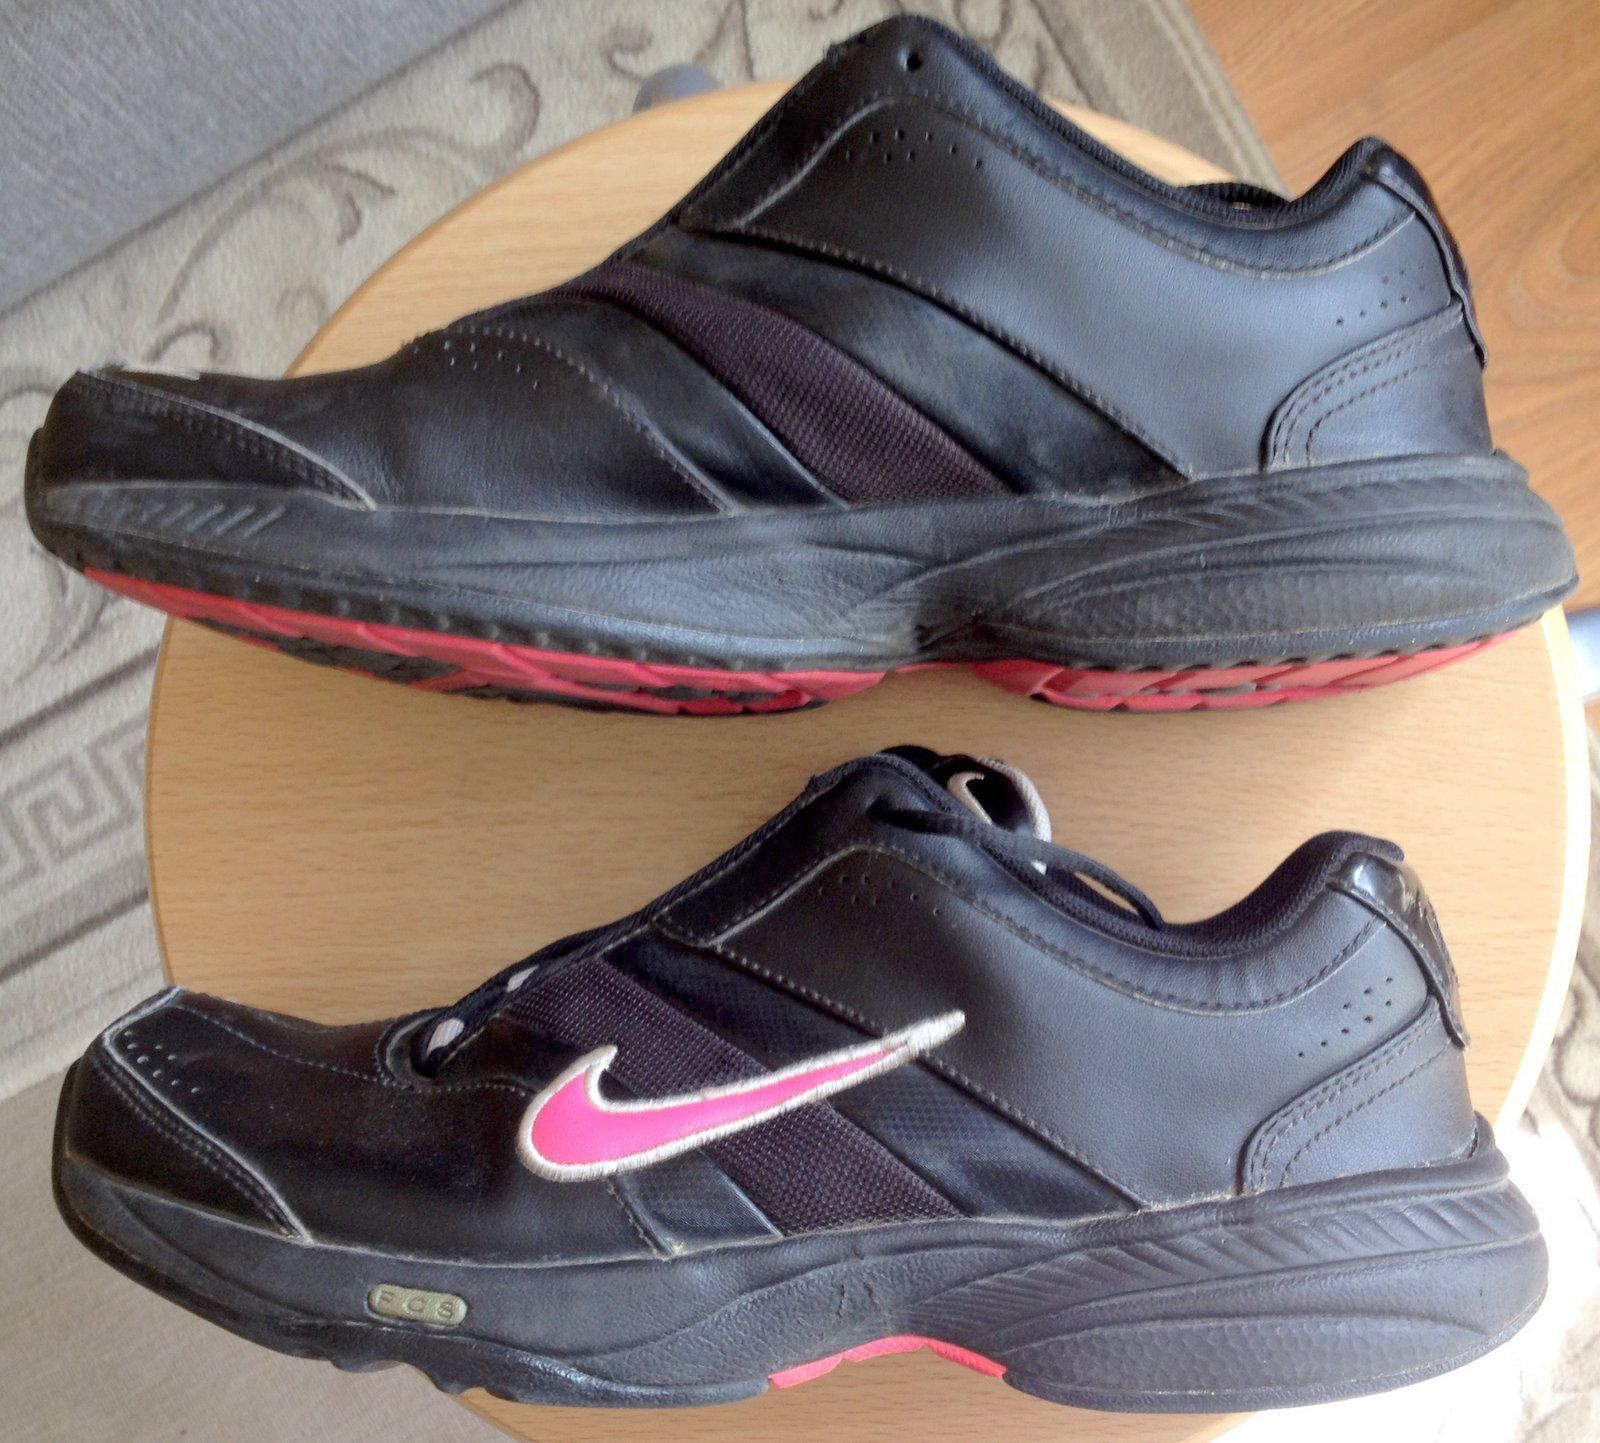 online store 817dc a0c7d EUR38 US7 UK4.5 24cm Nike Trainers Sports and 50 similar items